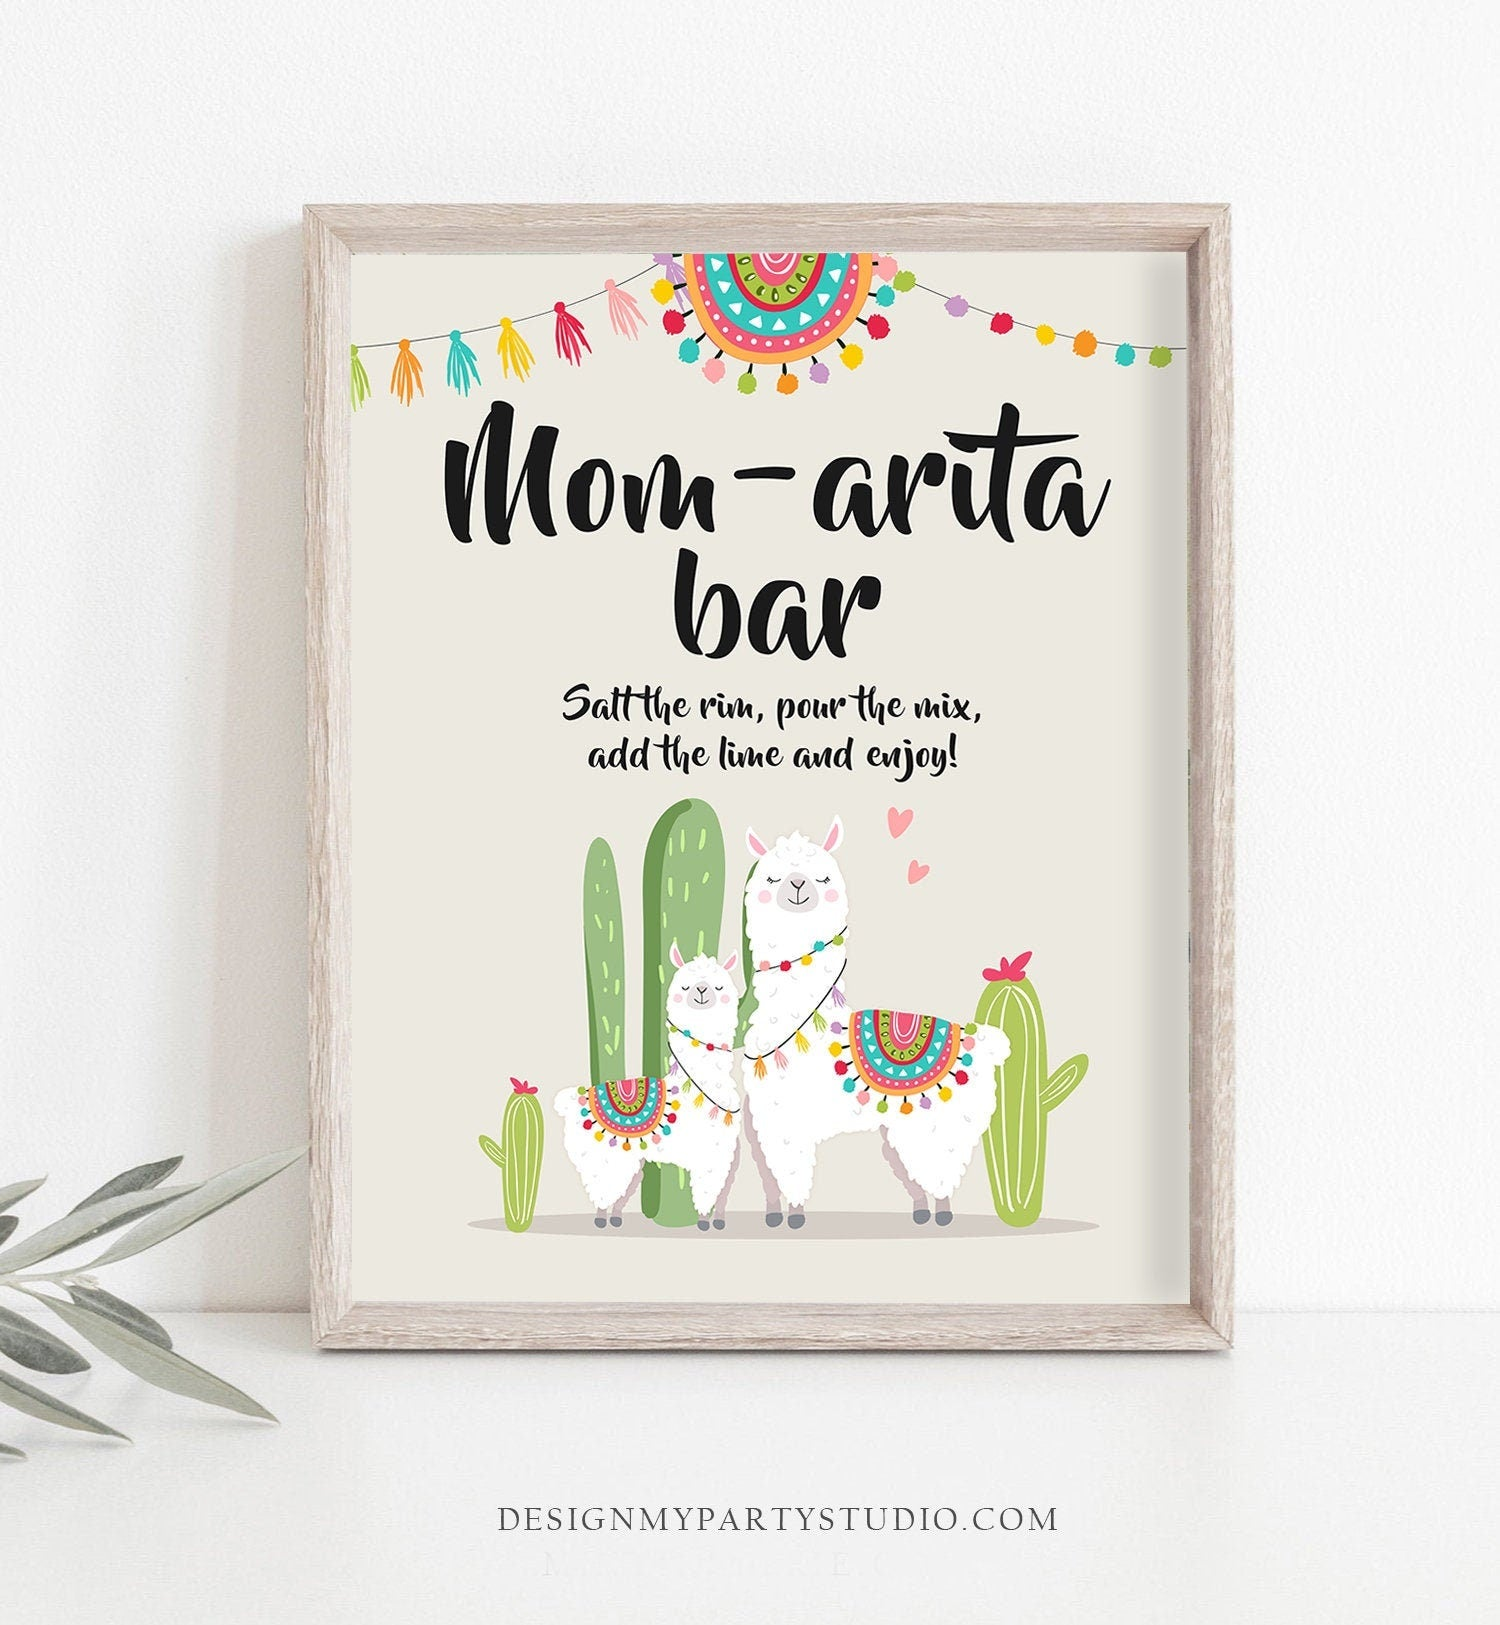 Llama Mom-arita Bar Sign Fiesta Margarita Mom-a-rita Baby Shower Couples Shower Decor Cactus Mexican Table Sign 8x10 Download Printable 0079